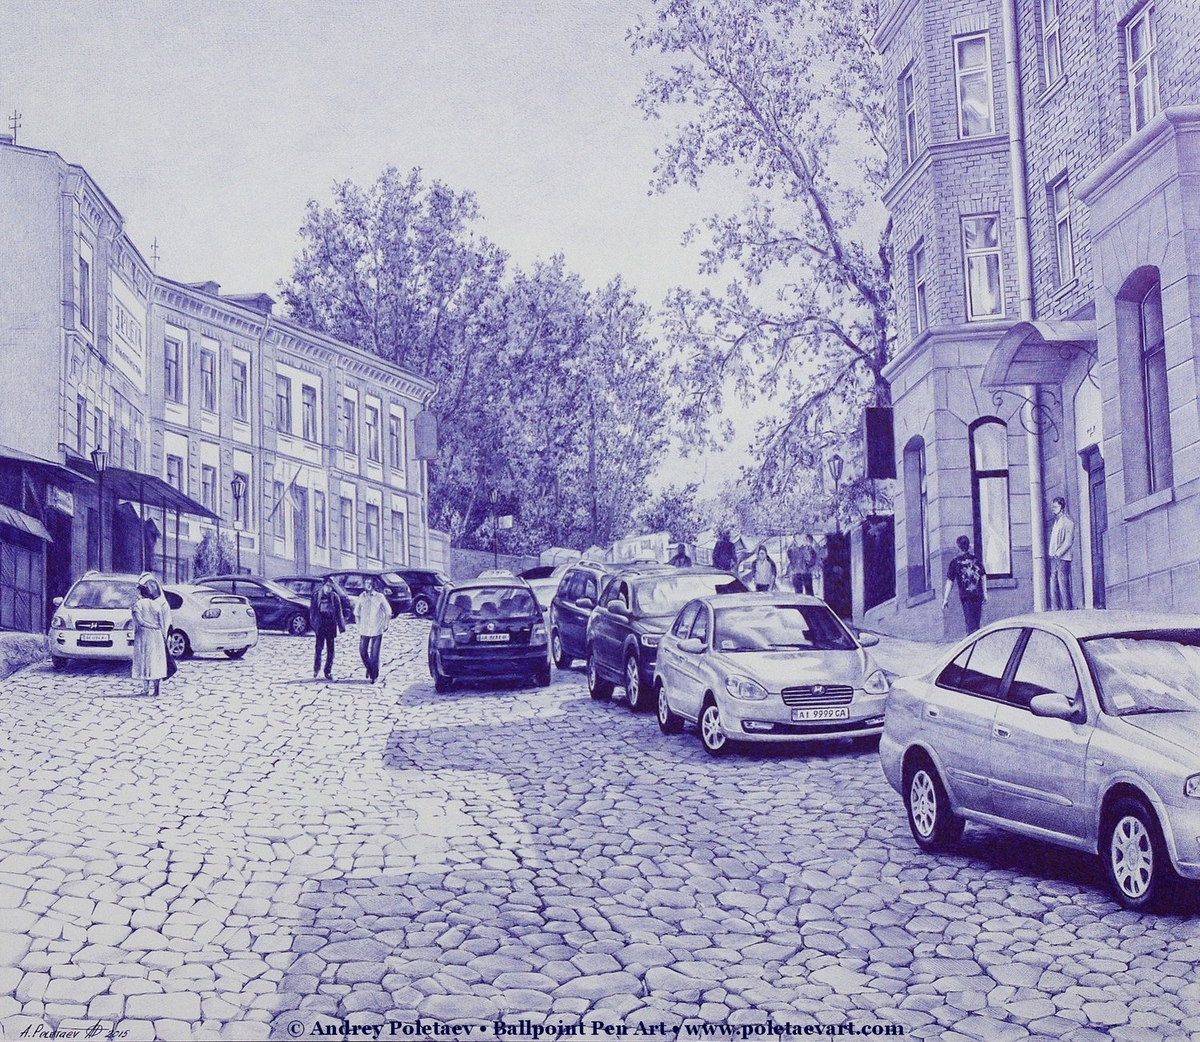 07-Andreevsky-Street-Andrey-Poletaev-Detailed-Urban-Drawings-achieved-with-a-Ballpoint-Pen-www-designstack-co